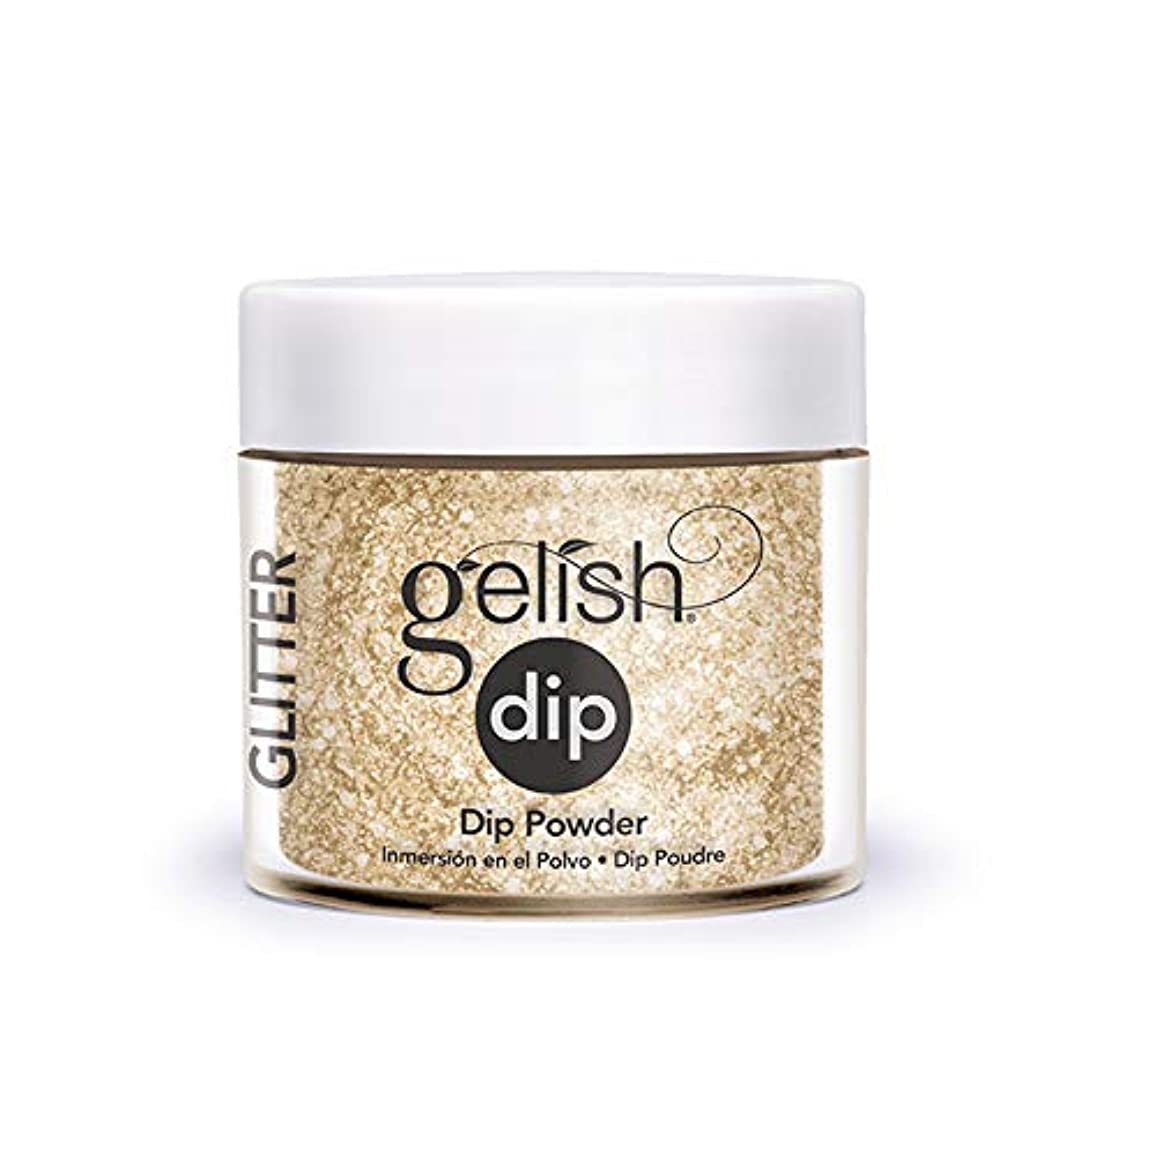 アクチュエータ不正確導体Harmony Gelish - Acrylic Dip Powder - All that Glitters is Gold - 23g / 0.8oz